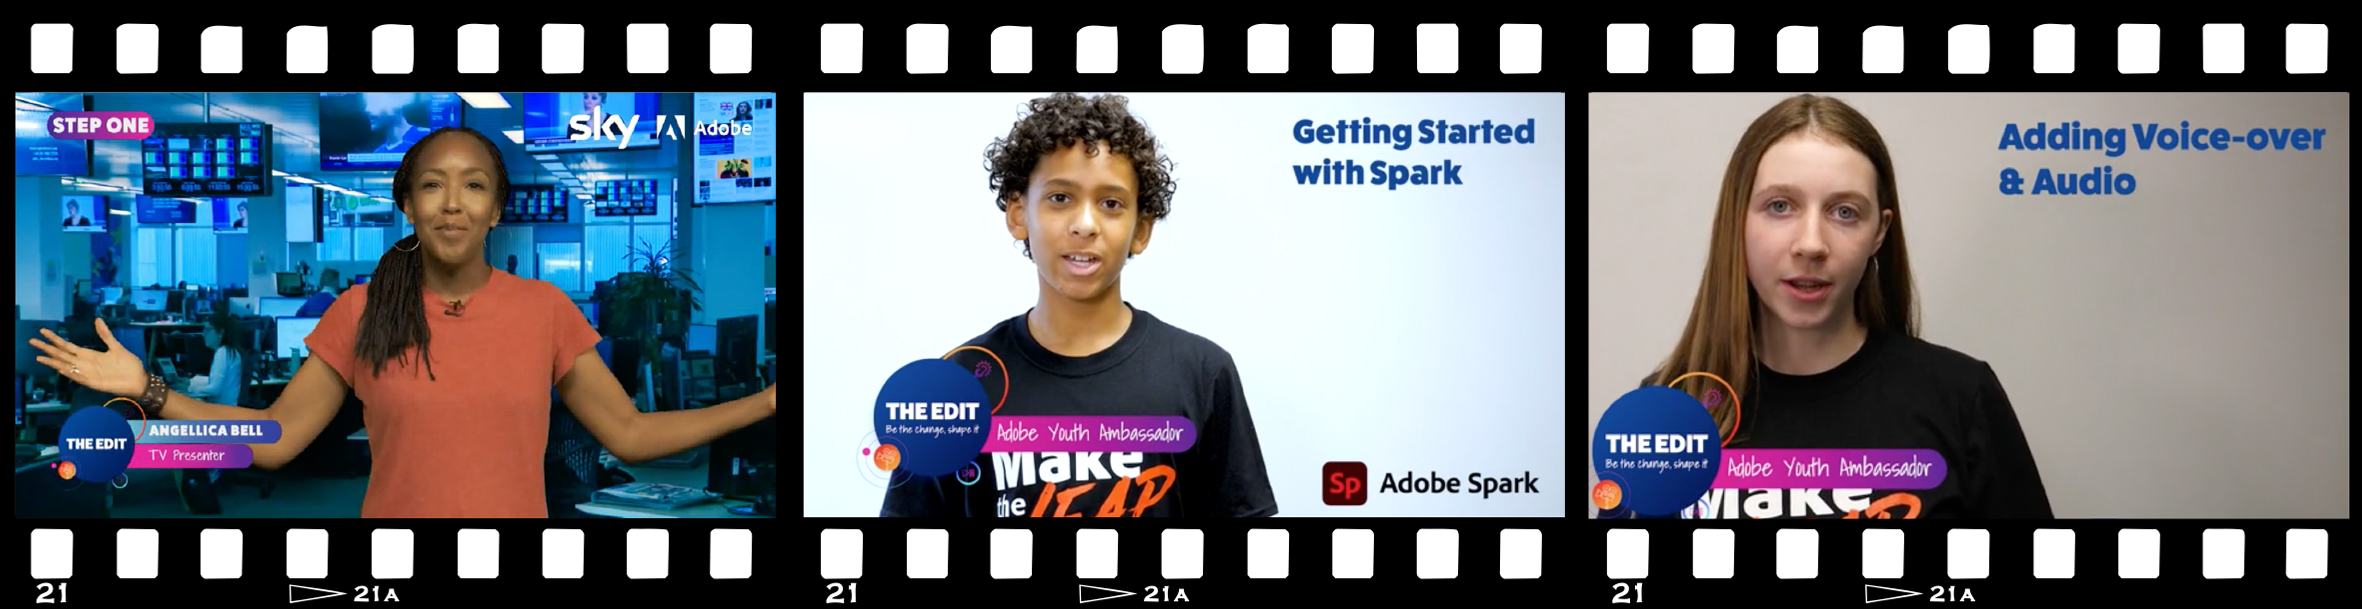 Film strip showing adobe how to videos and angellica bell brief